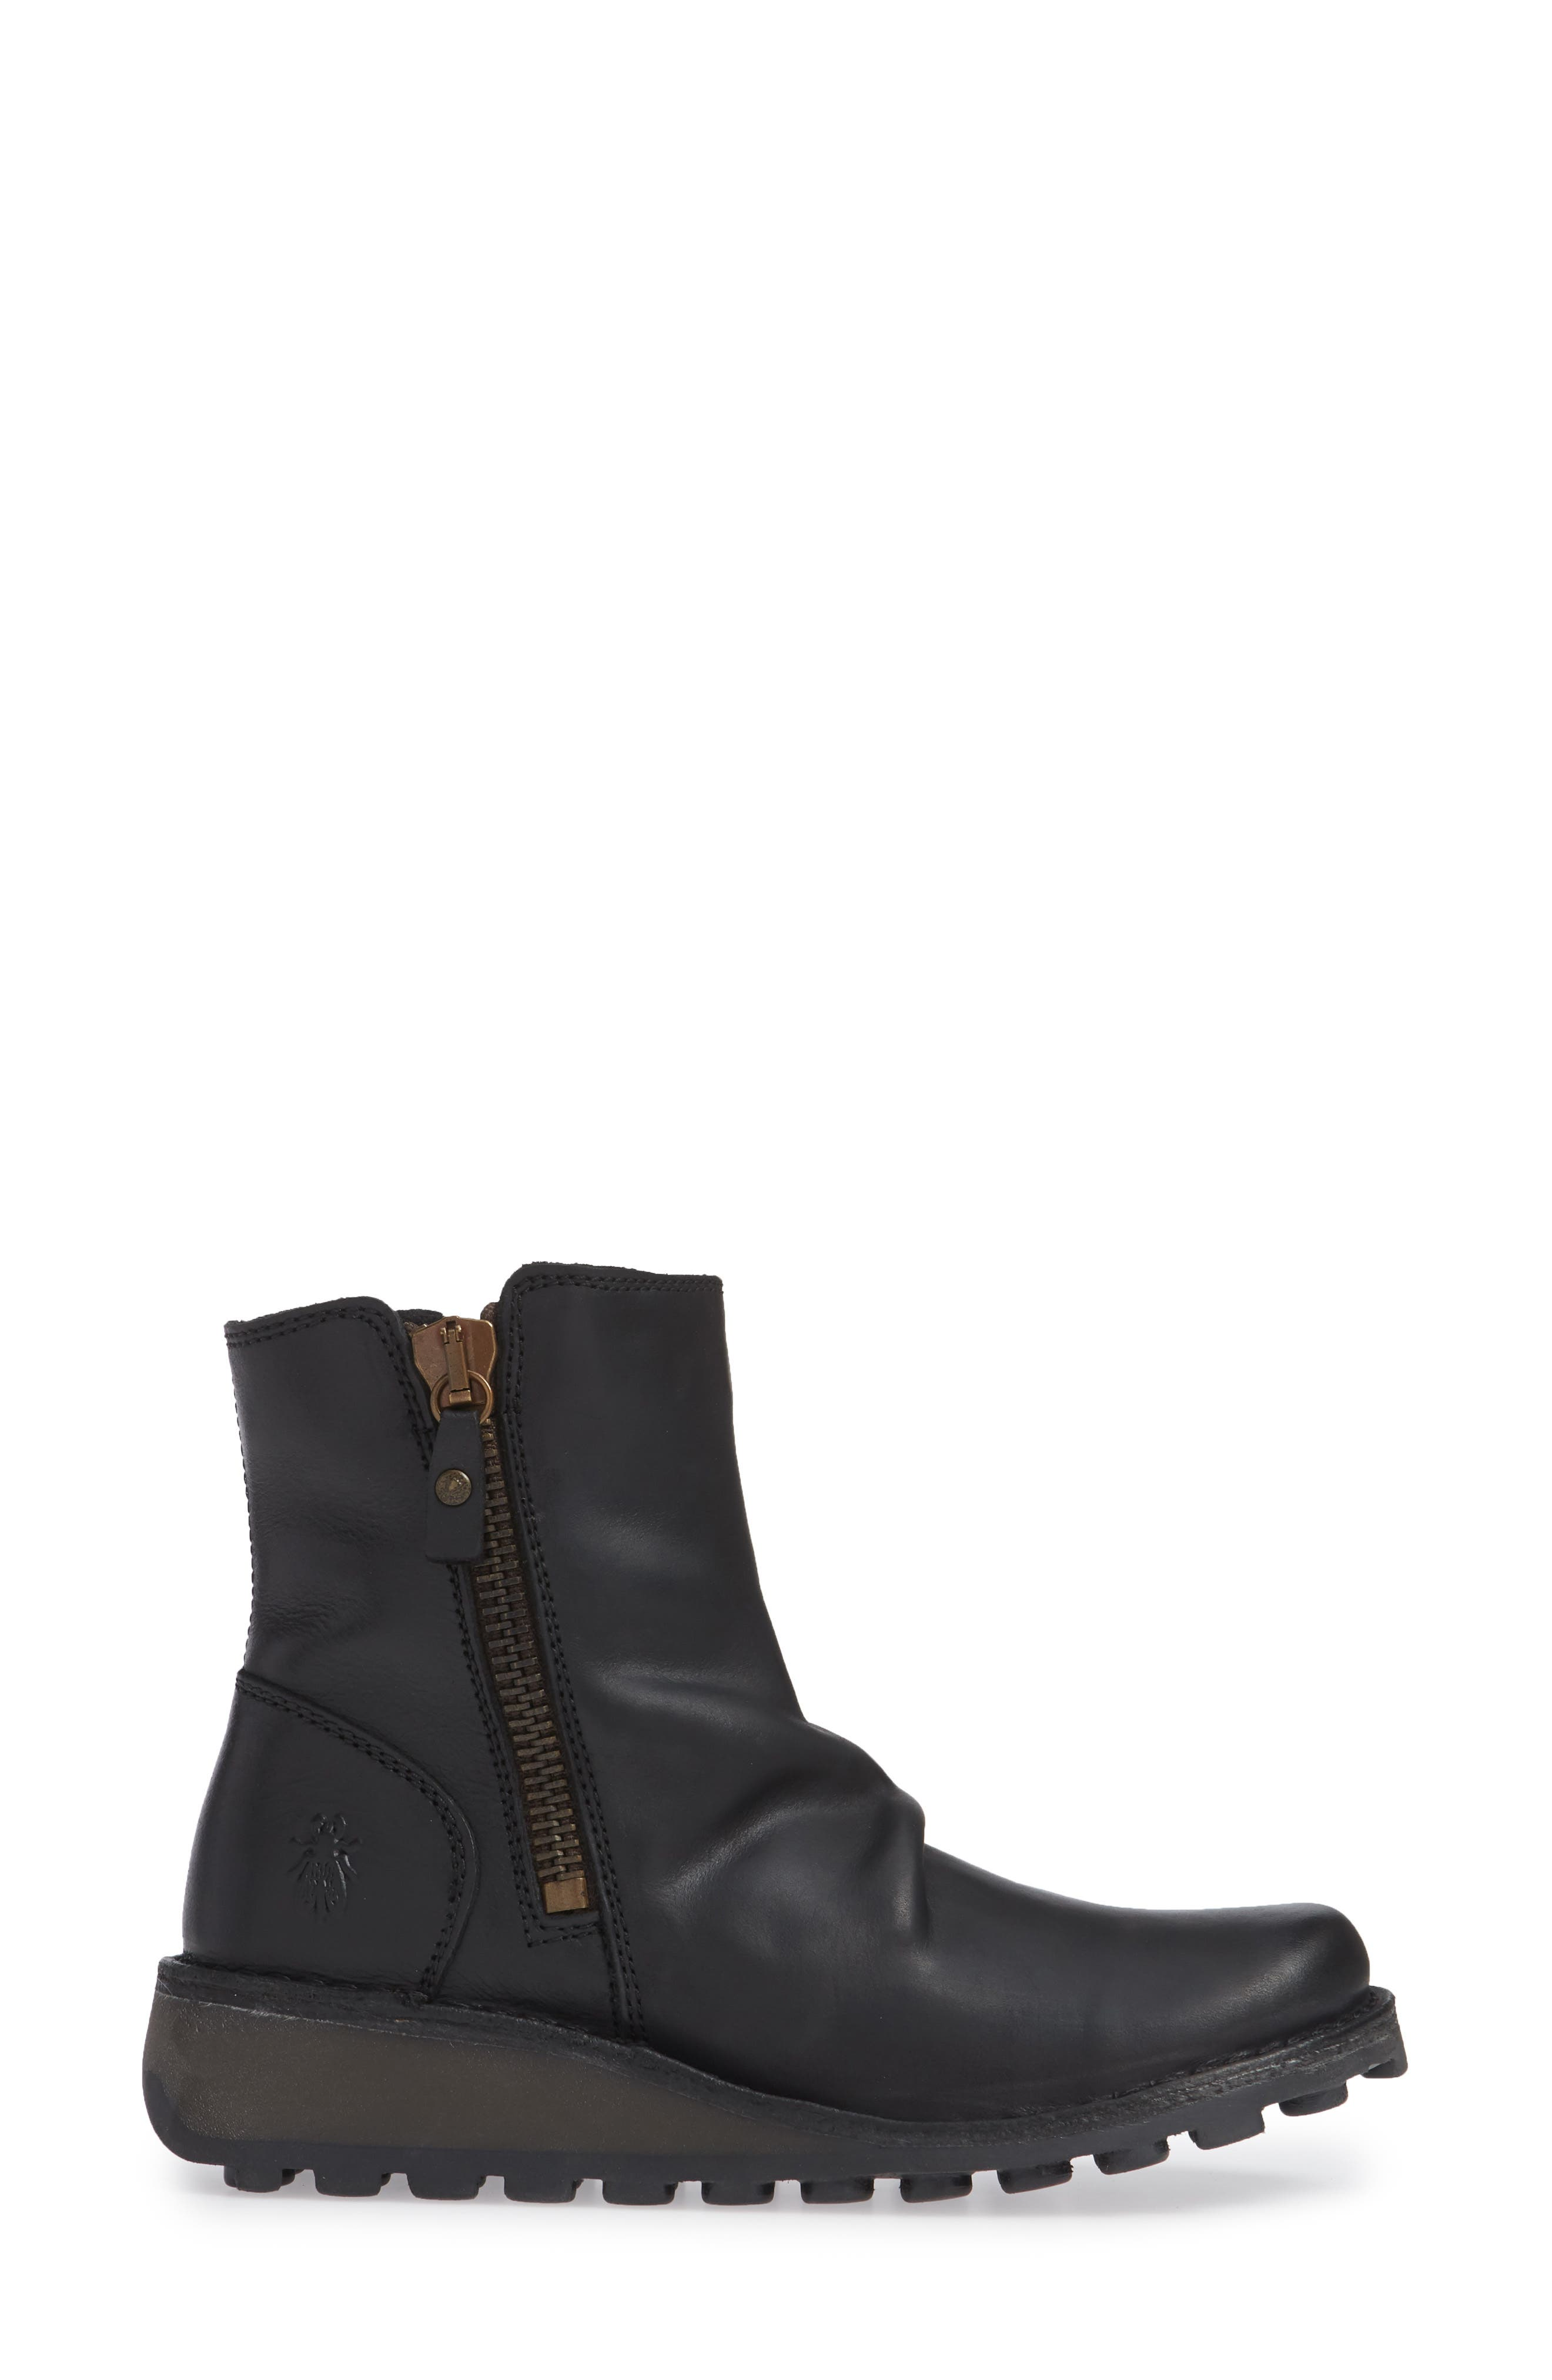 FLY LONDON, Mong Boot, Alternate thumbnail 3, color, BLACK LEATHER